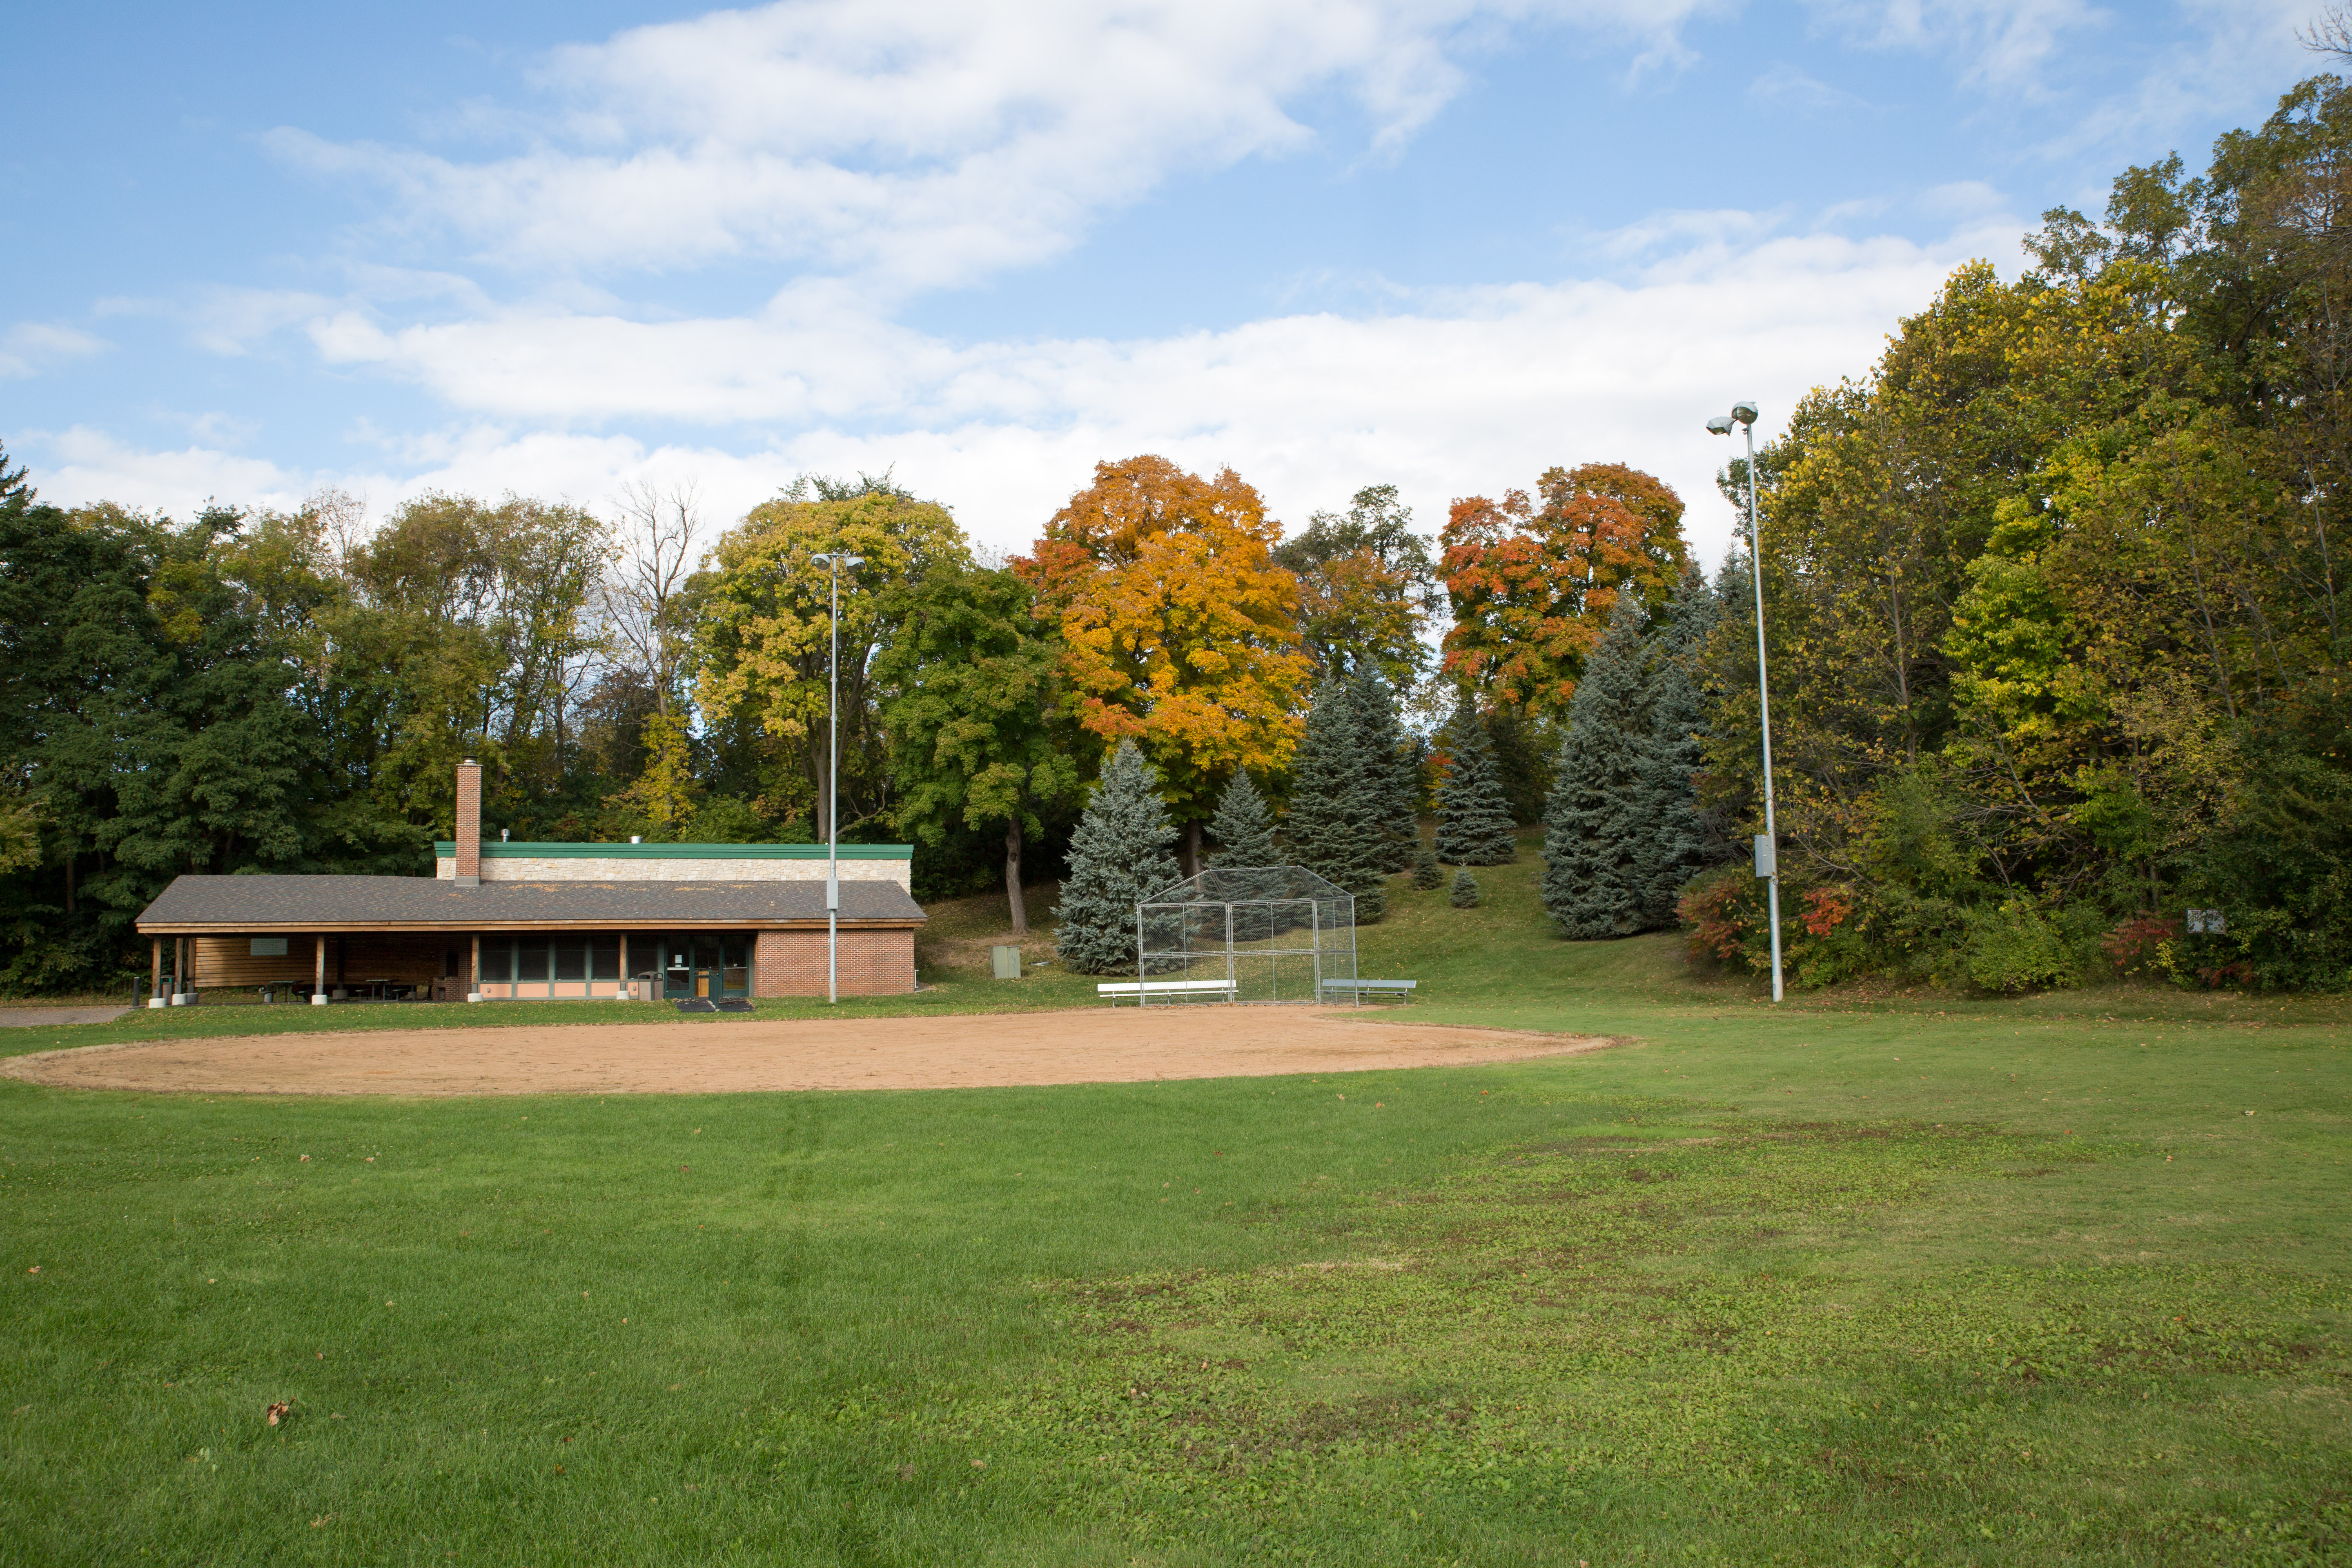 Klapprich Park and Field